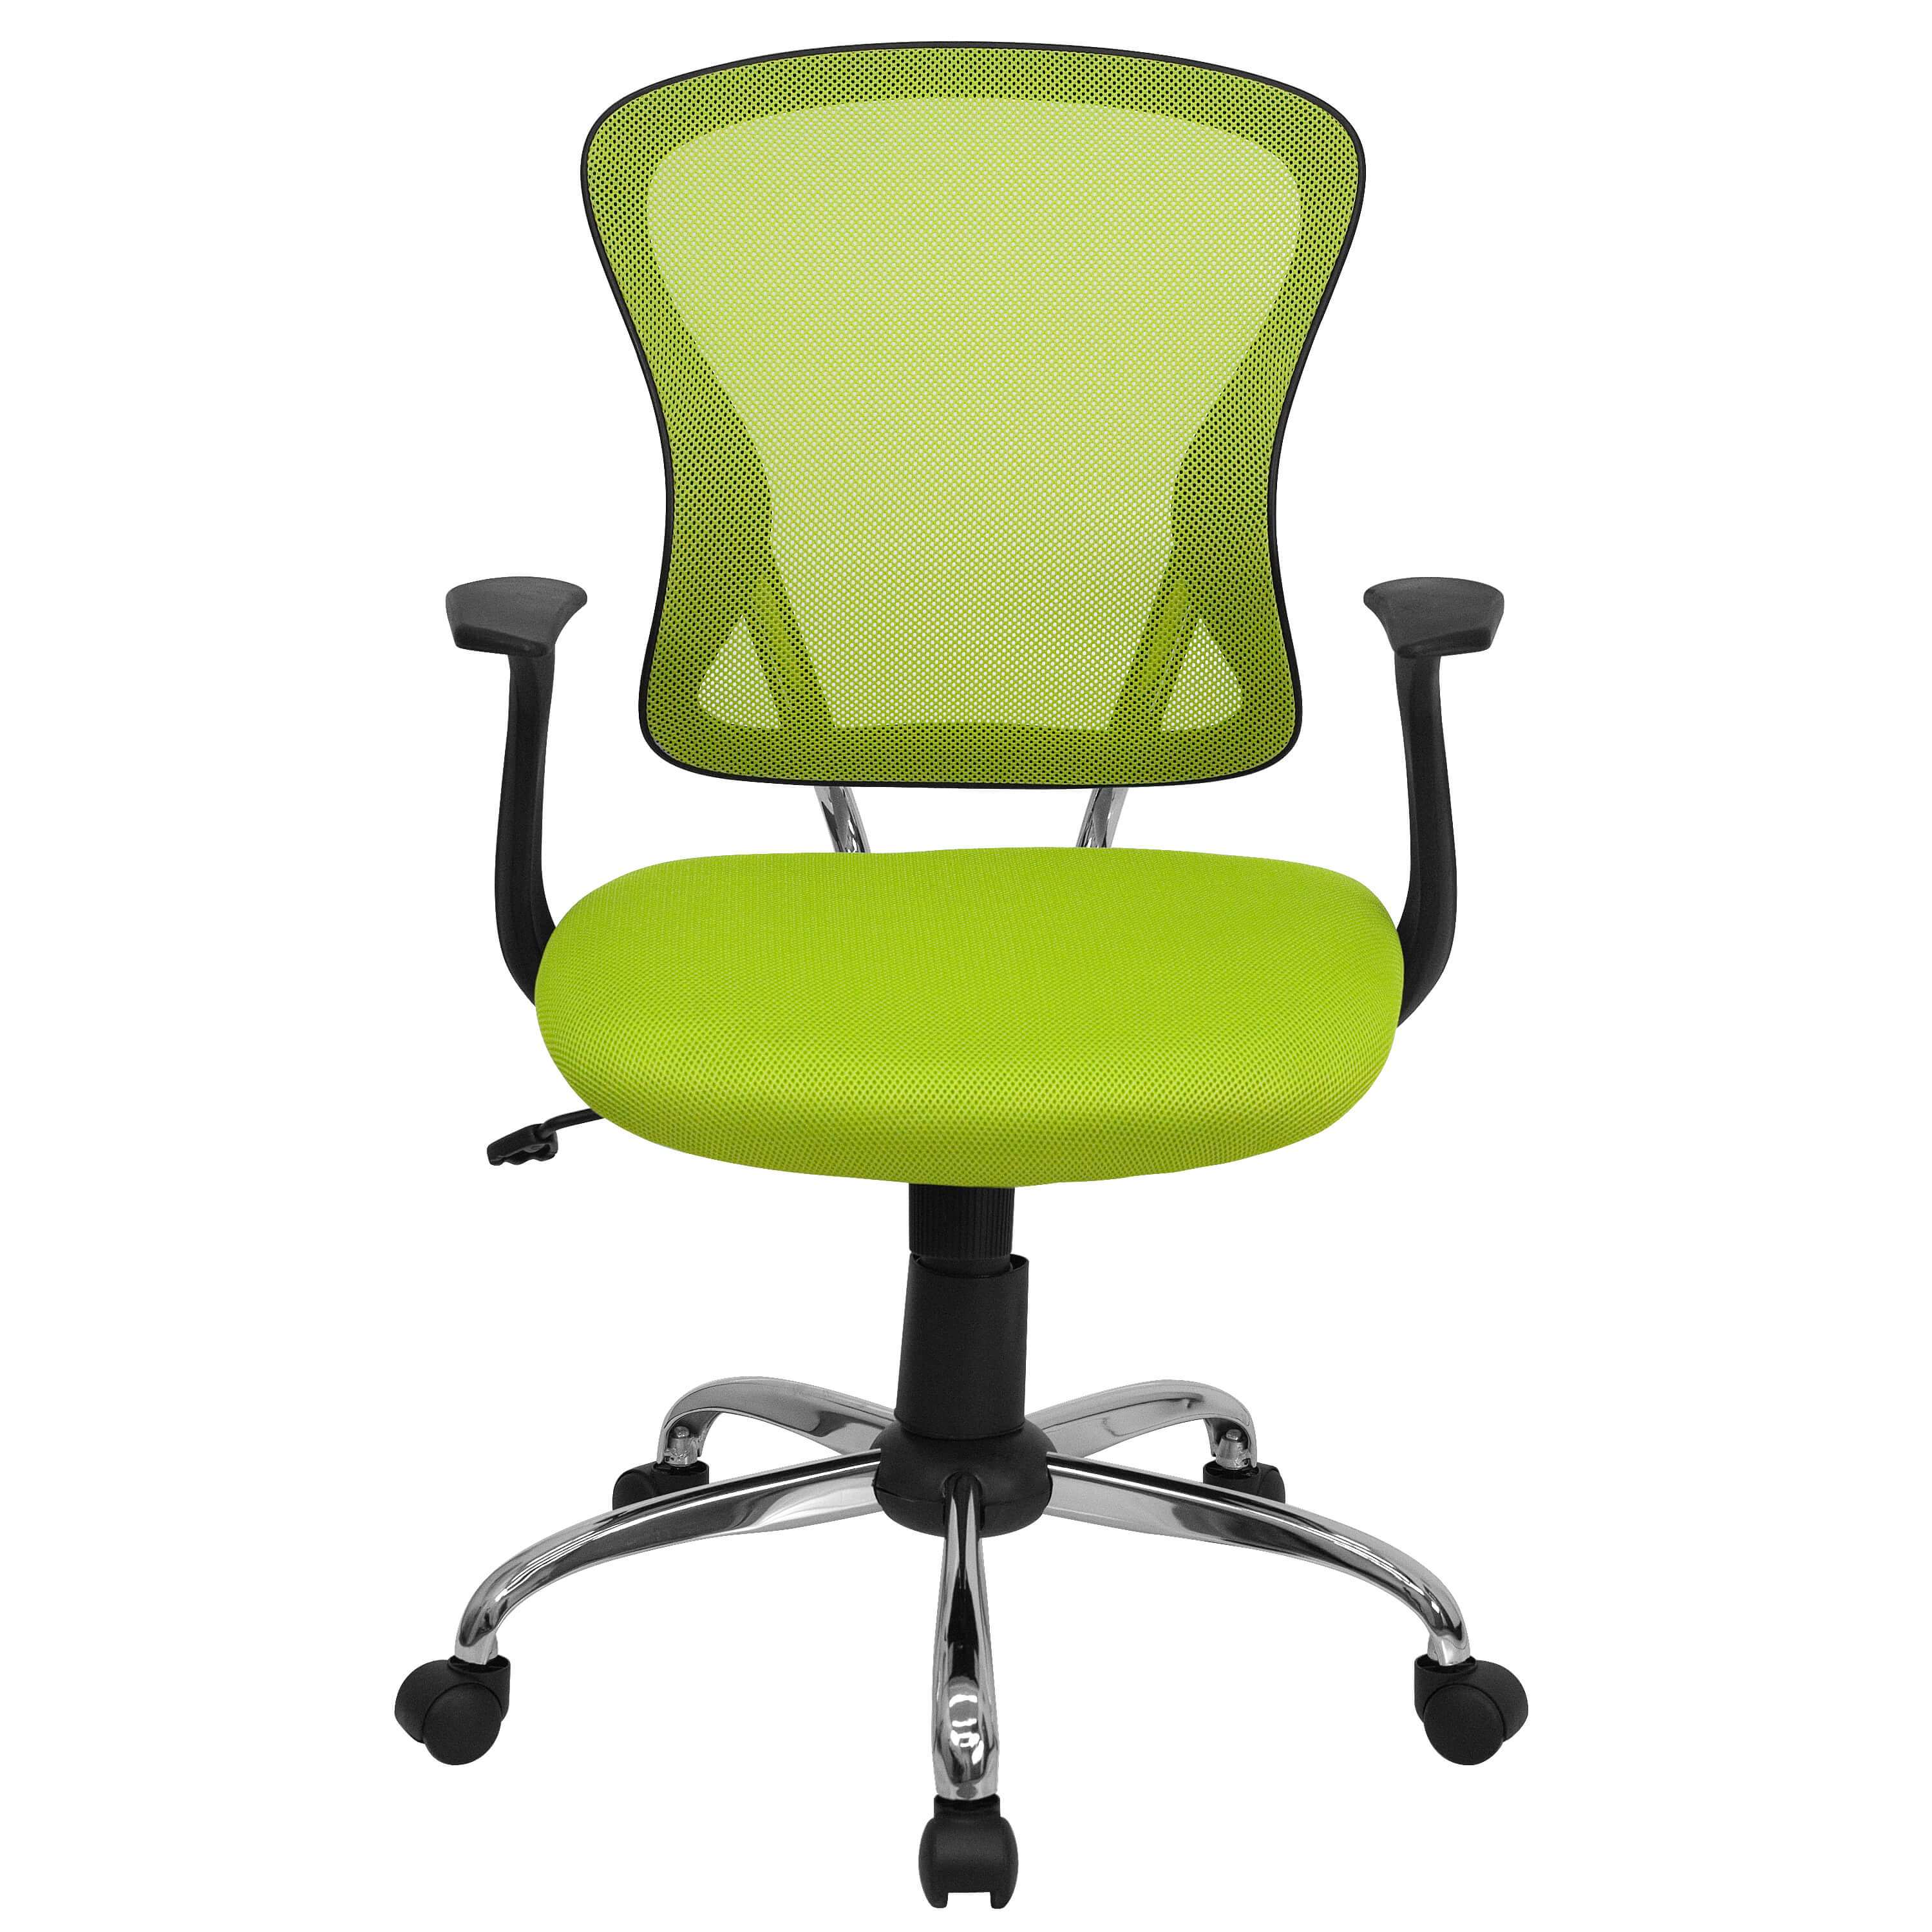 Colorful desk chairs CUB H 8369F GN GG FLA